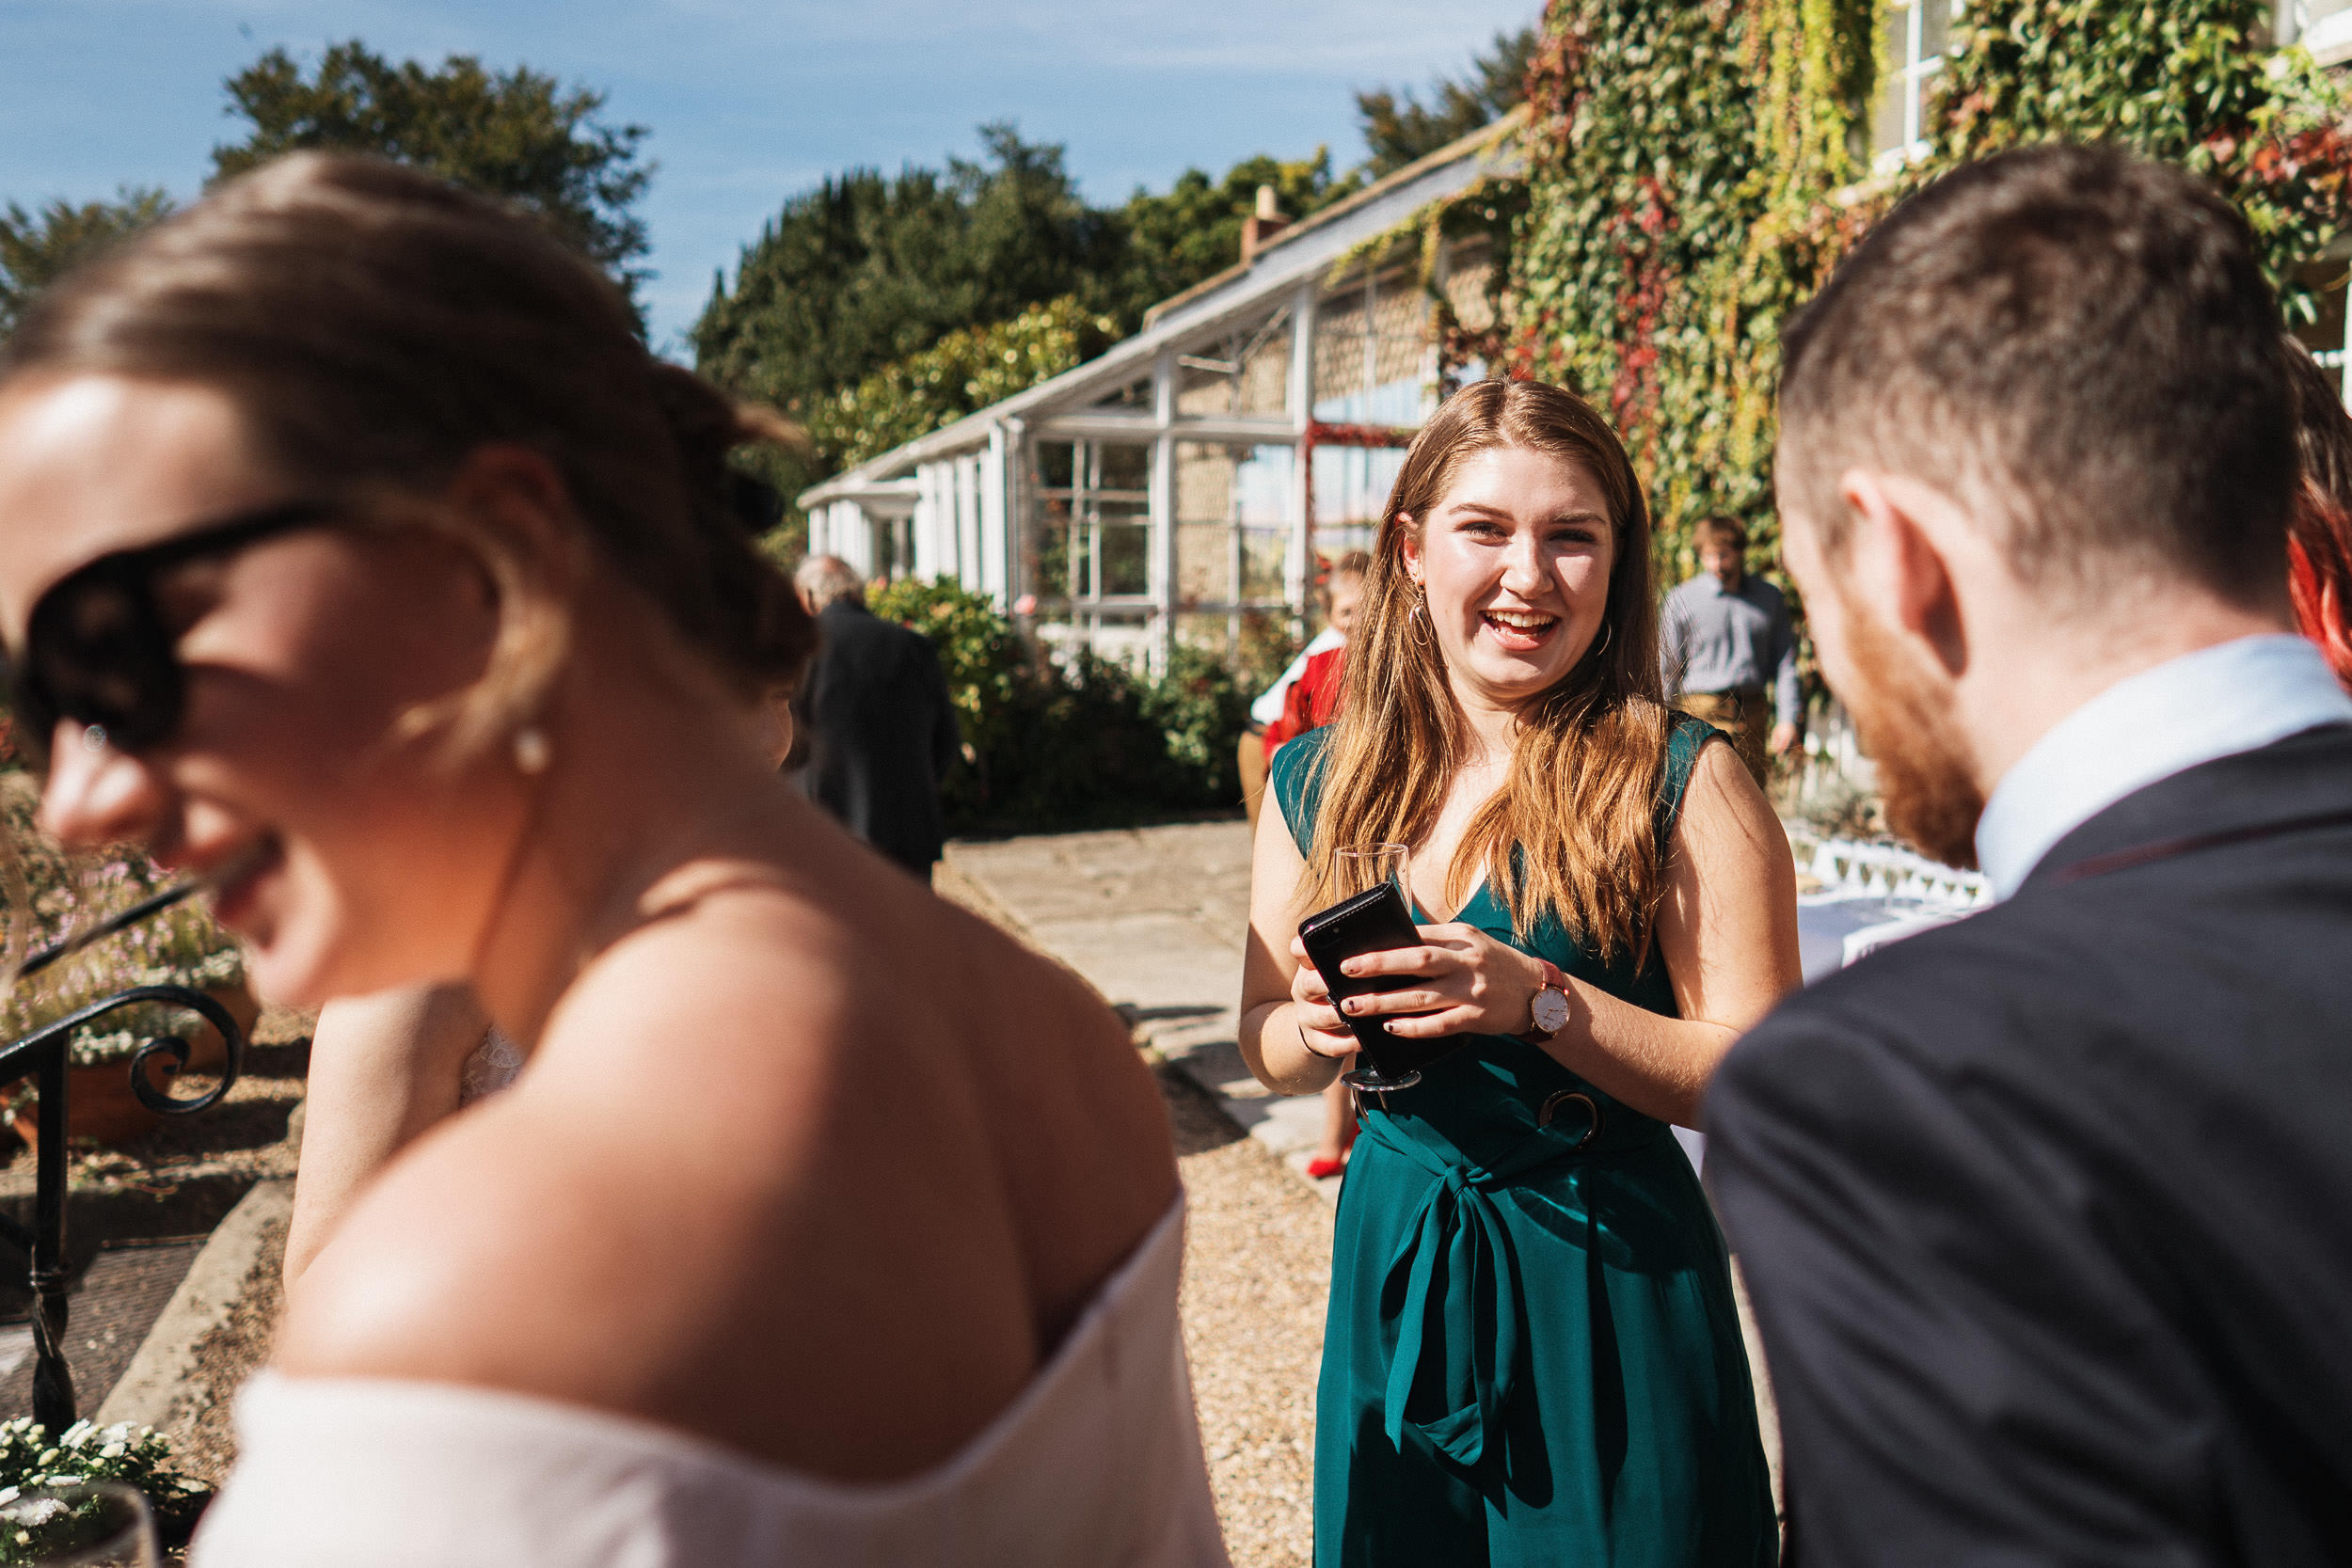 Pennard House Wedding - Reception on the Lawn